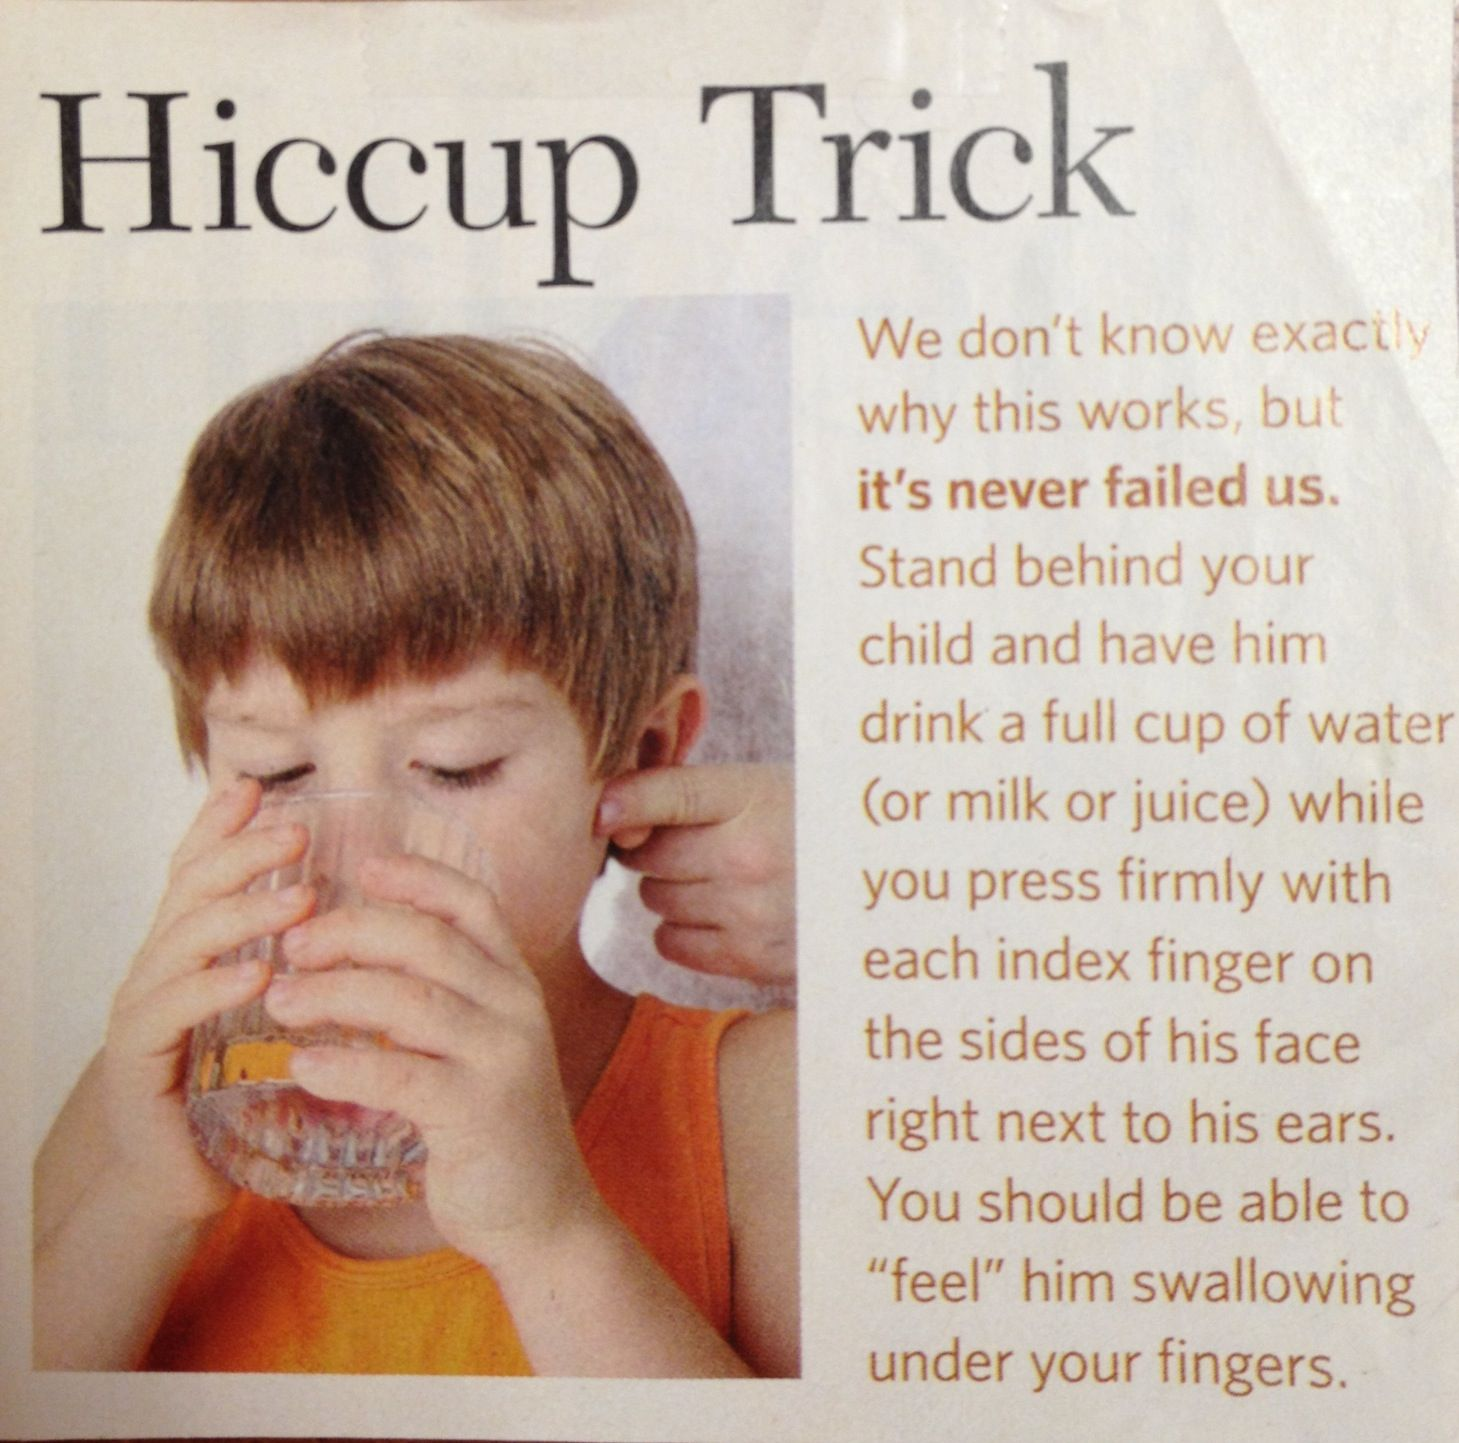 How to get rid of hiccups - How To Get Rid Of Hiccups I Have Had Hiccups Off